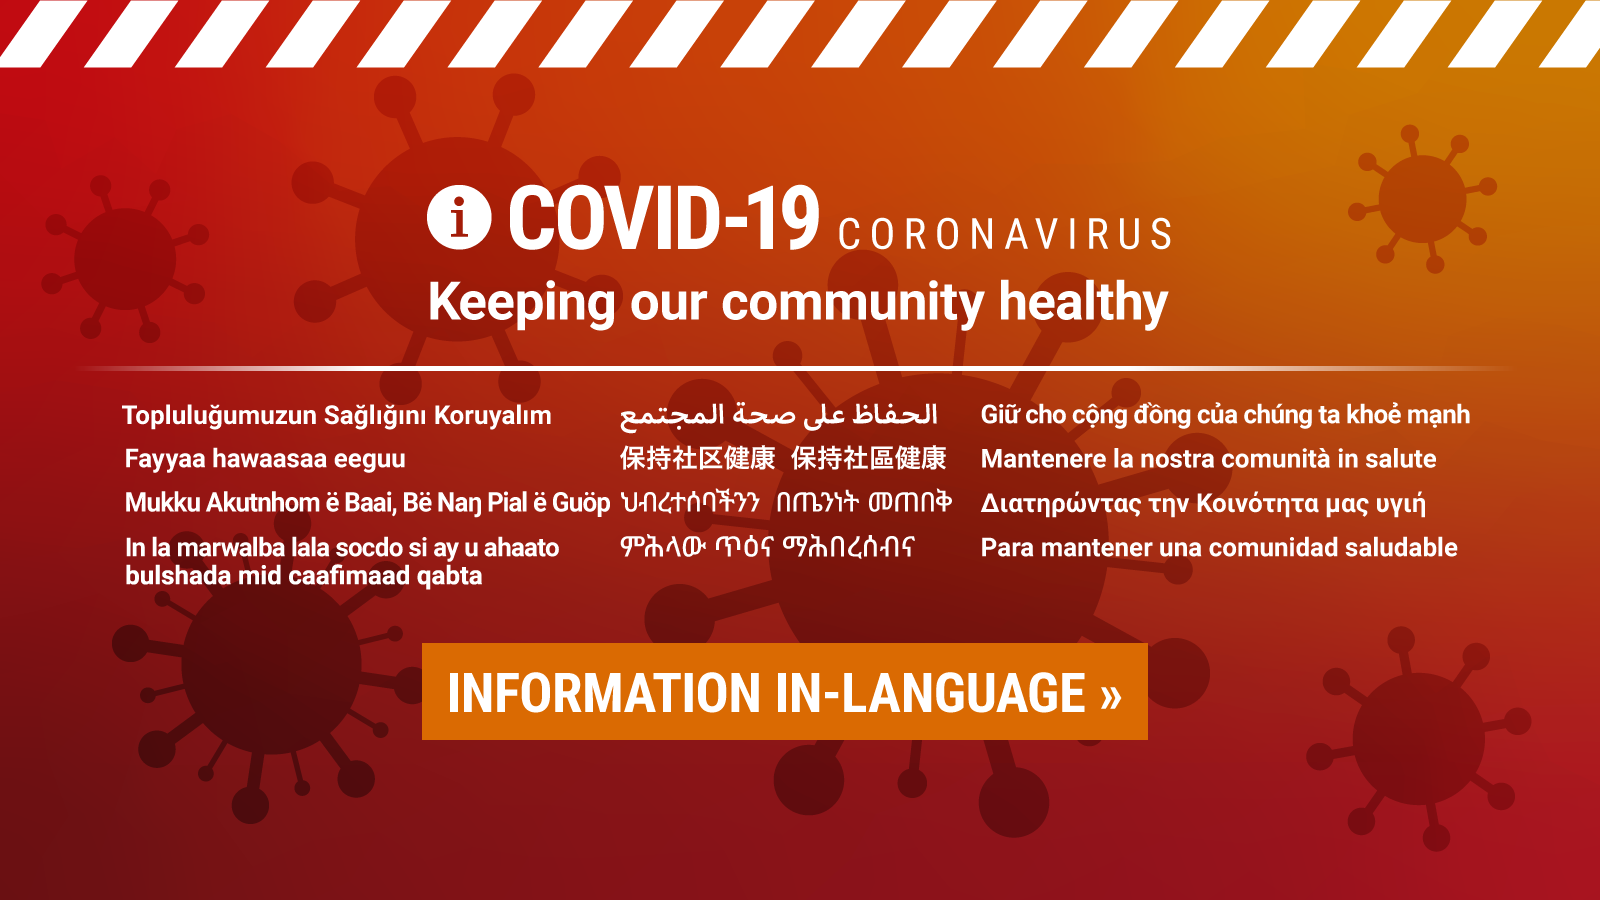 COVID19 information in-language